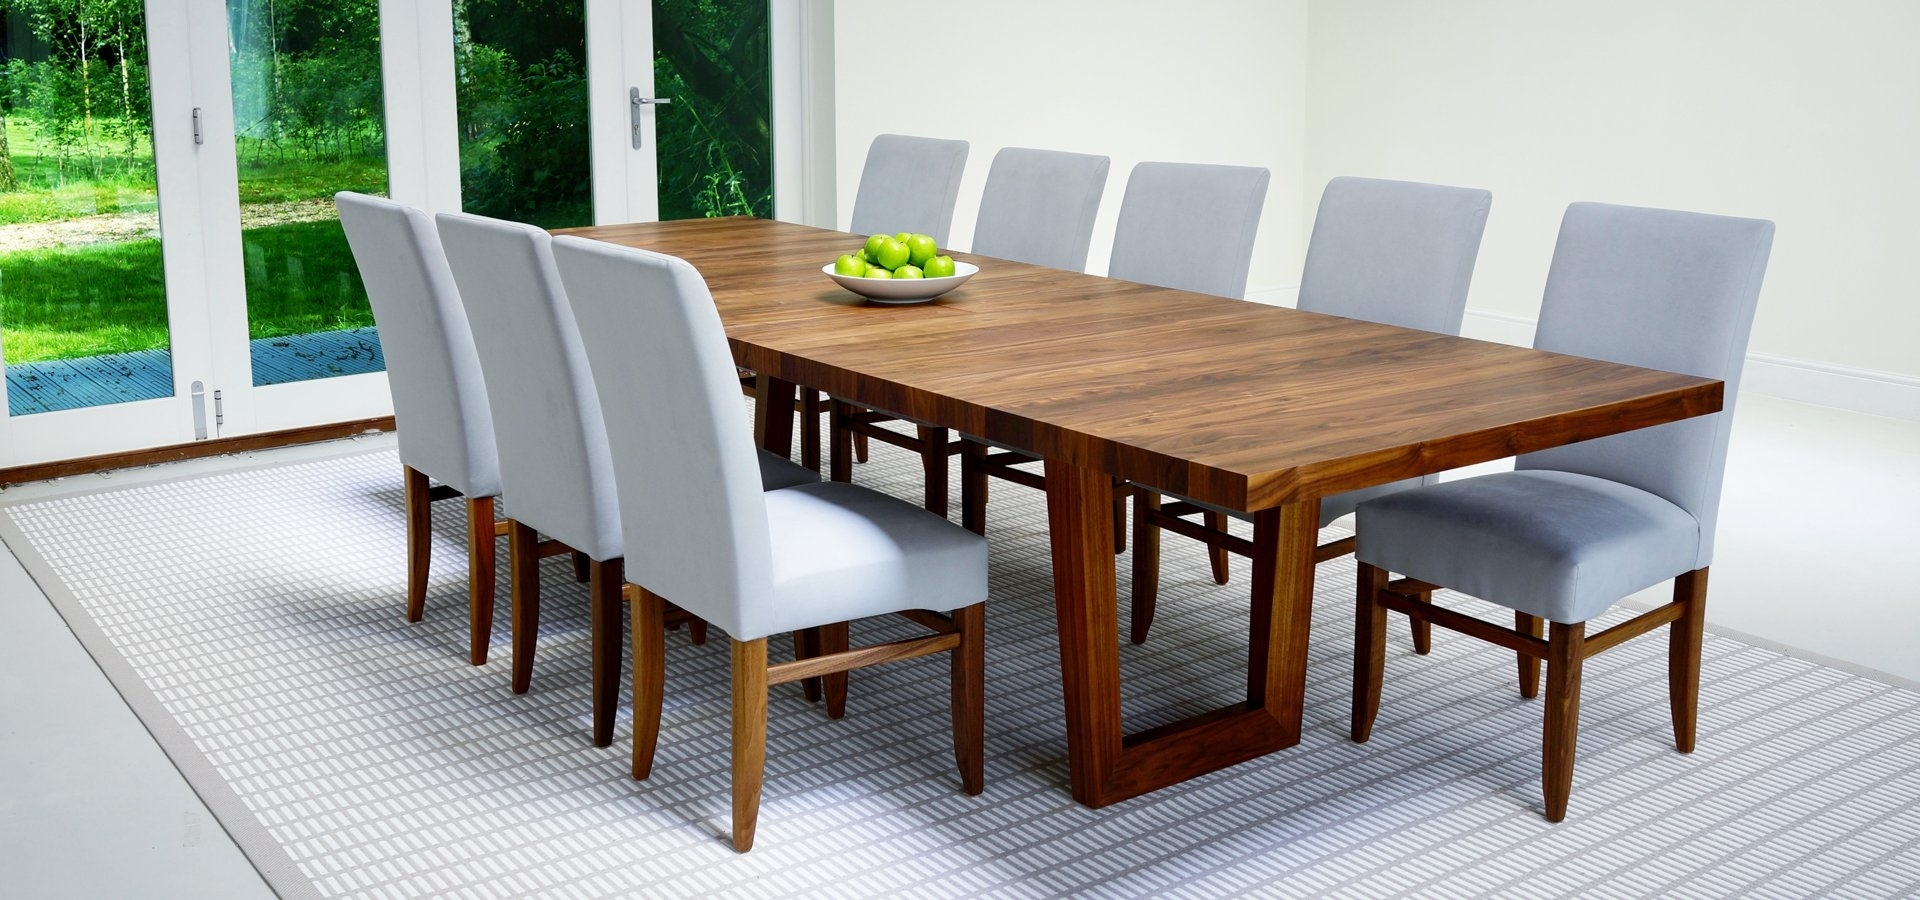 Current Extendable Dining Tables And Chairs Throughout Modern Extendable Dining Table Set – Castrophotos (View 2 of 25)